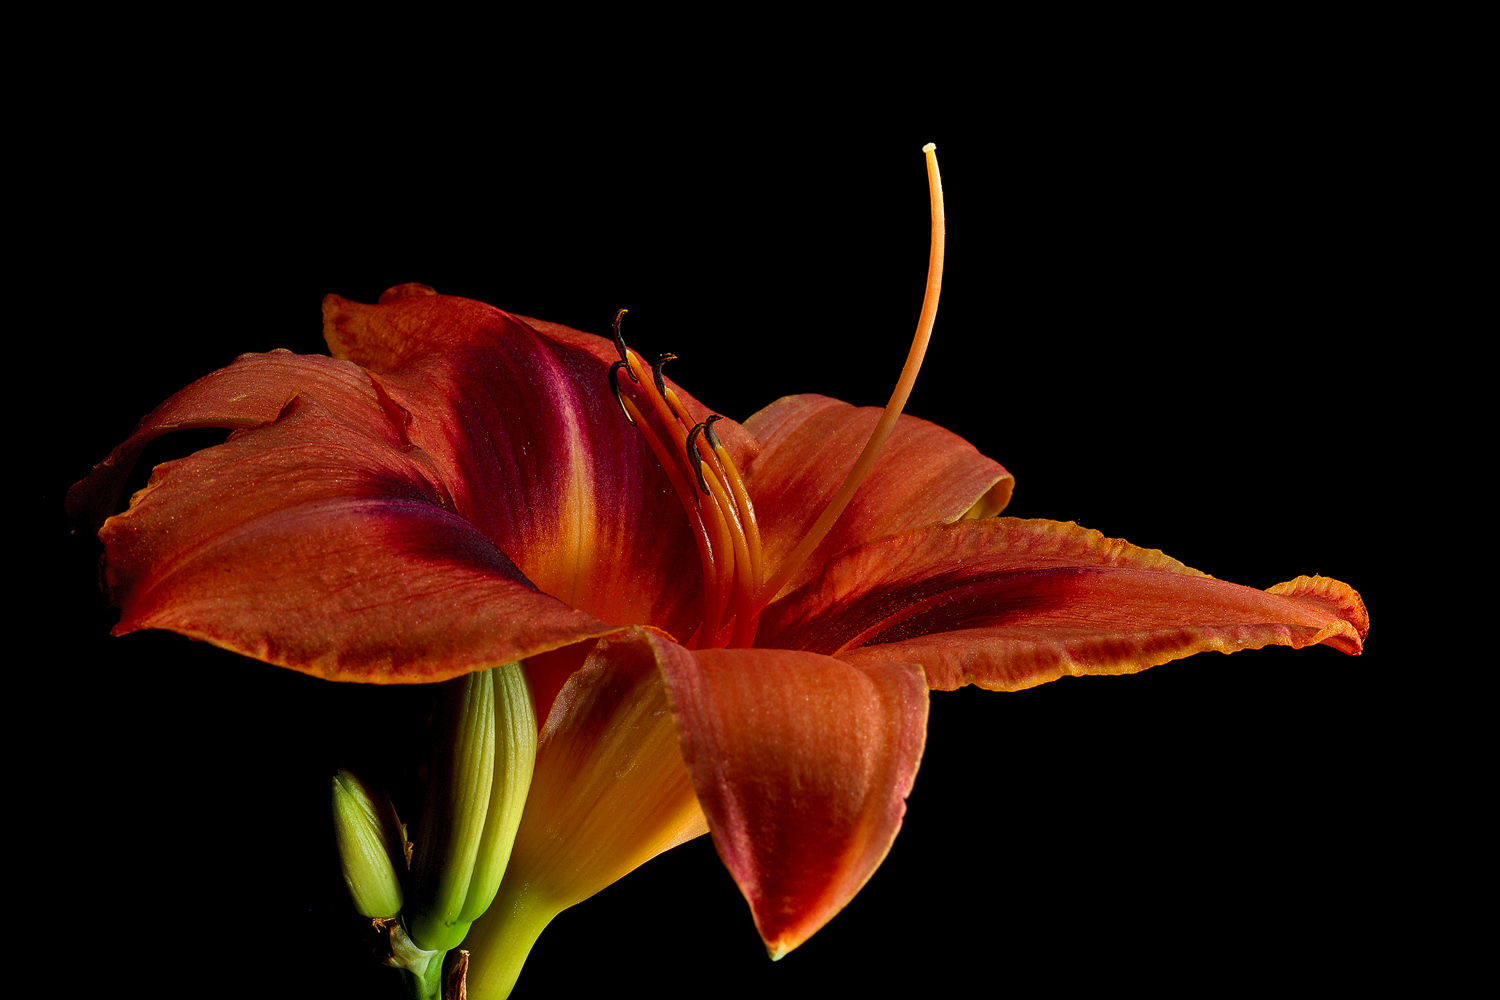 peachy lily img aw author sava gregory and verena